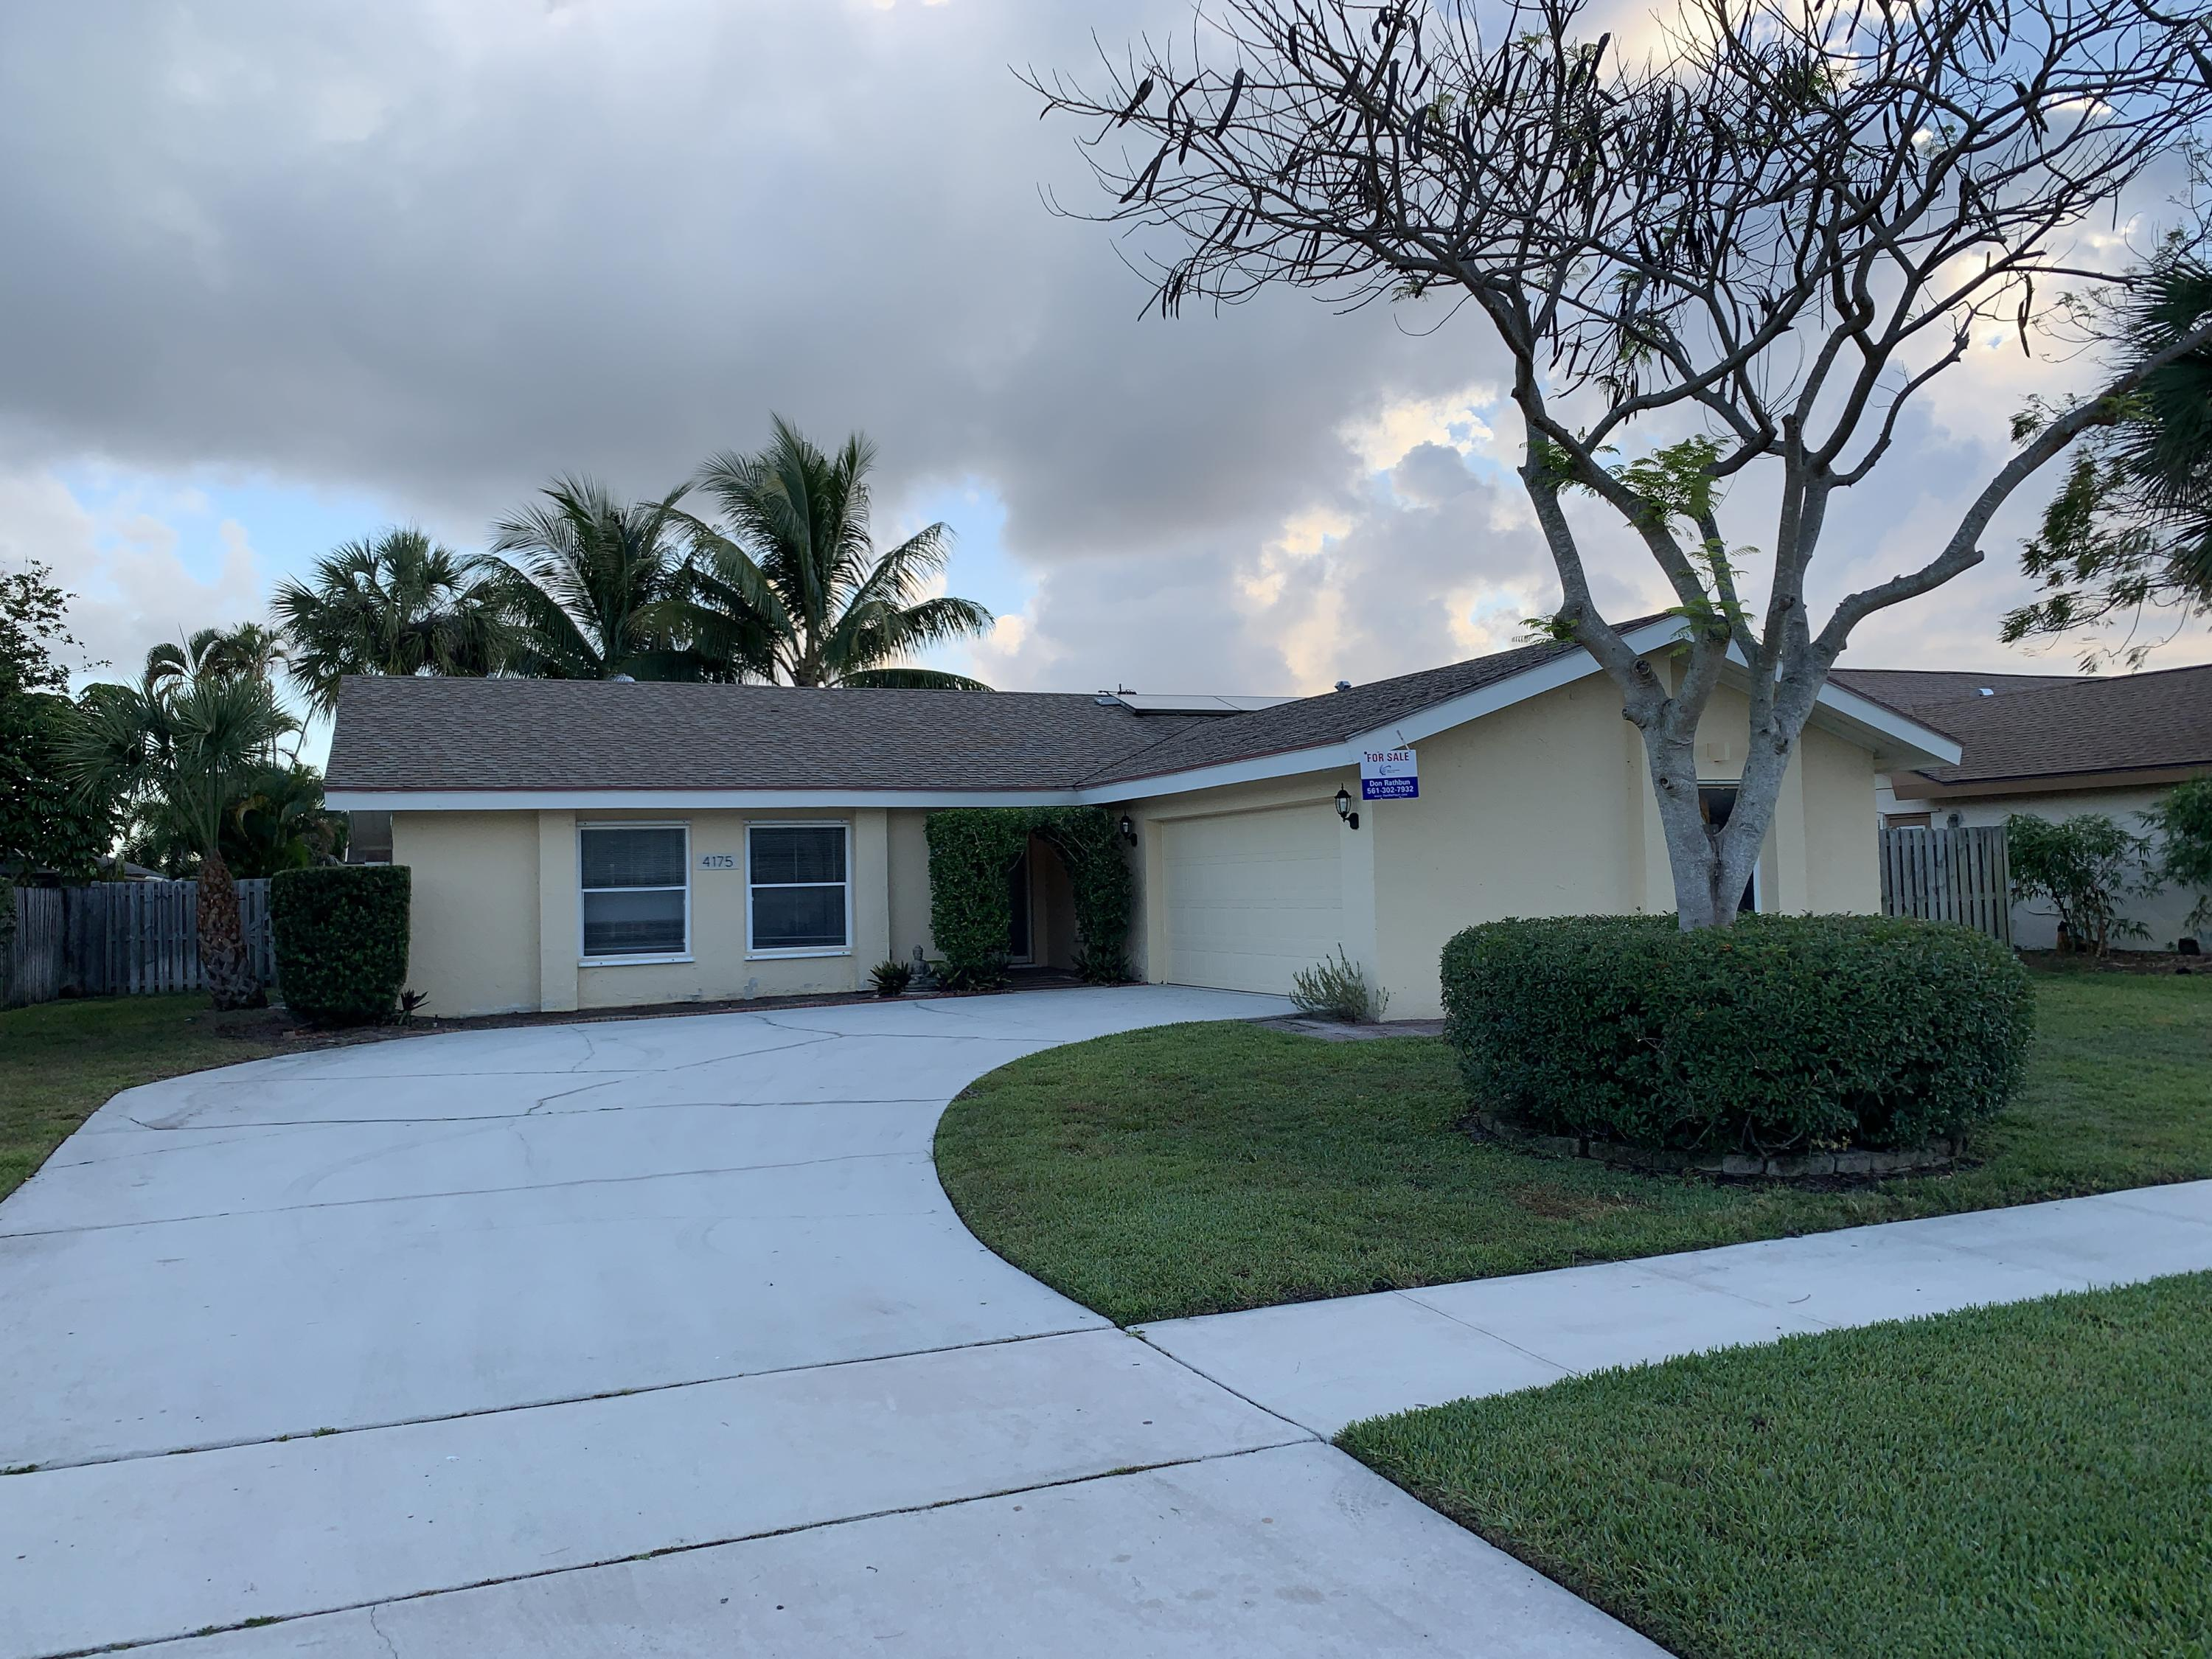 Home for sale in Pheasant Walk Boca Raton Florida